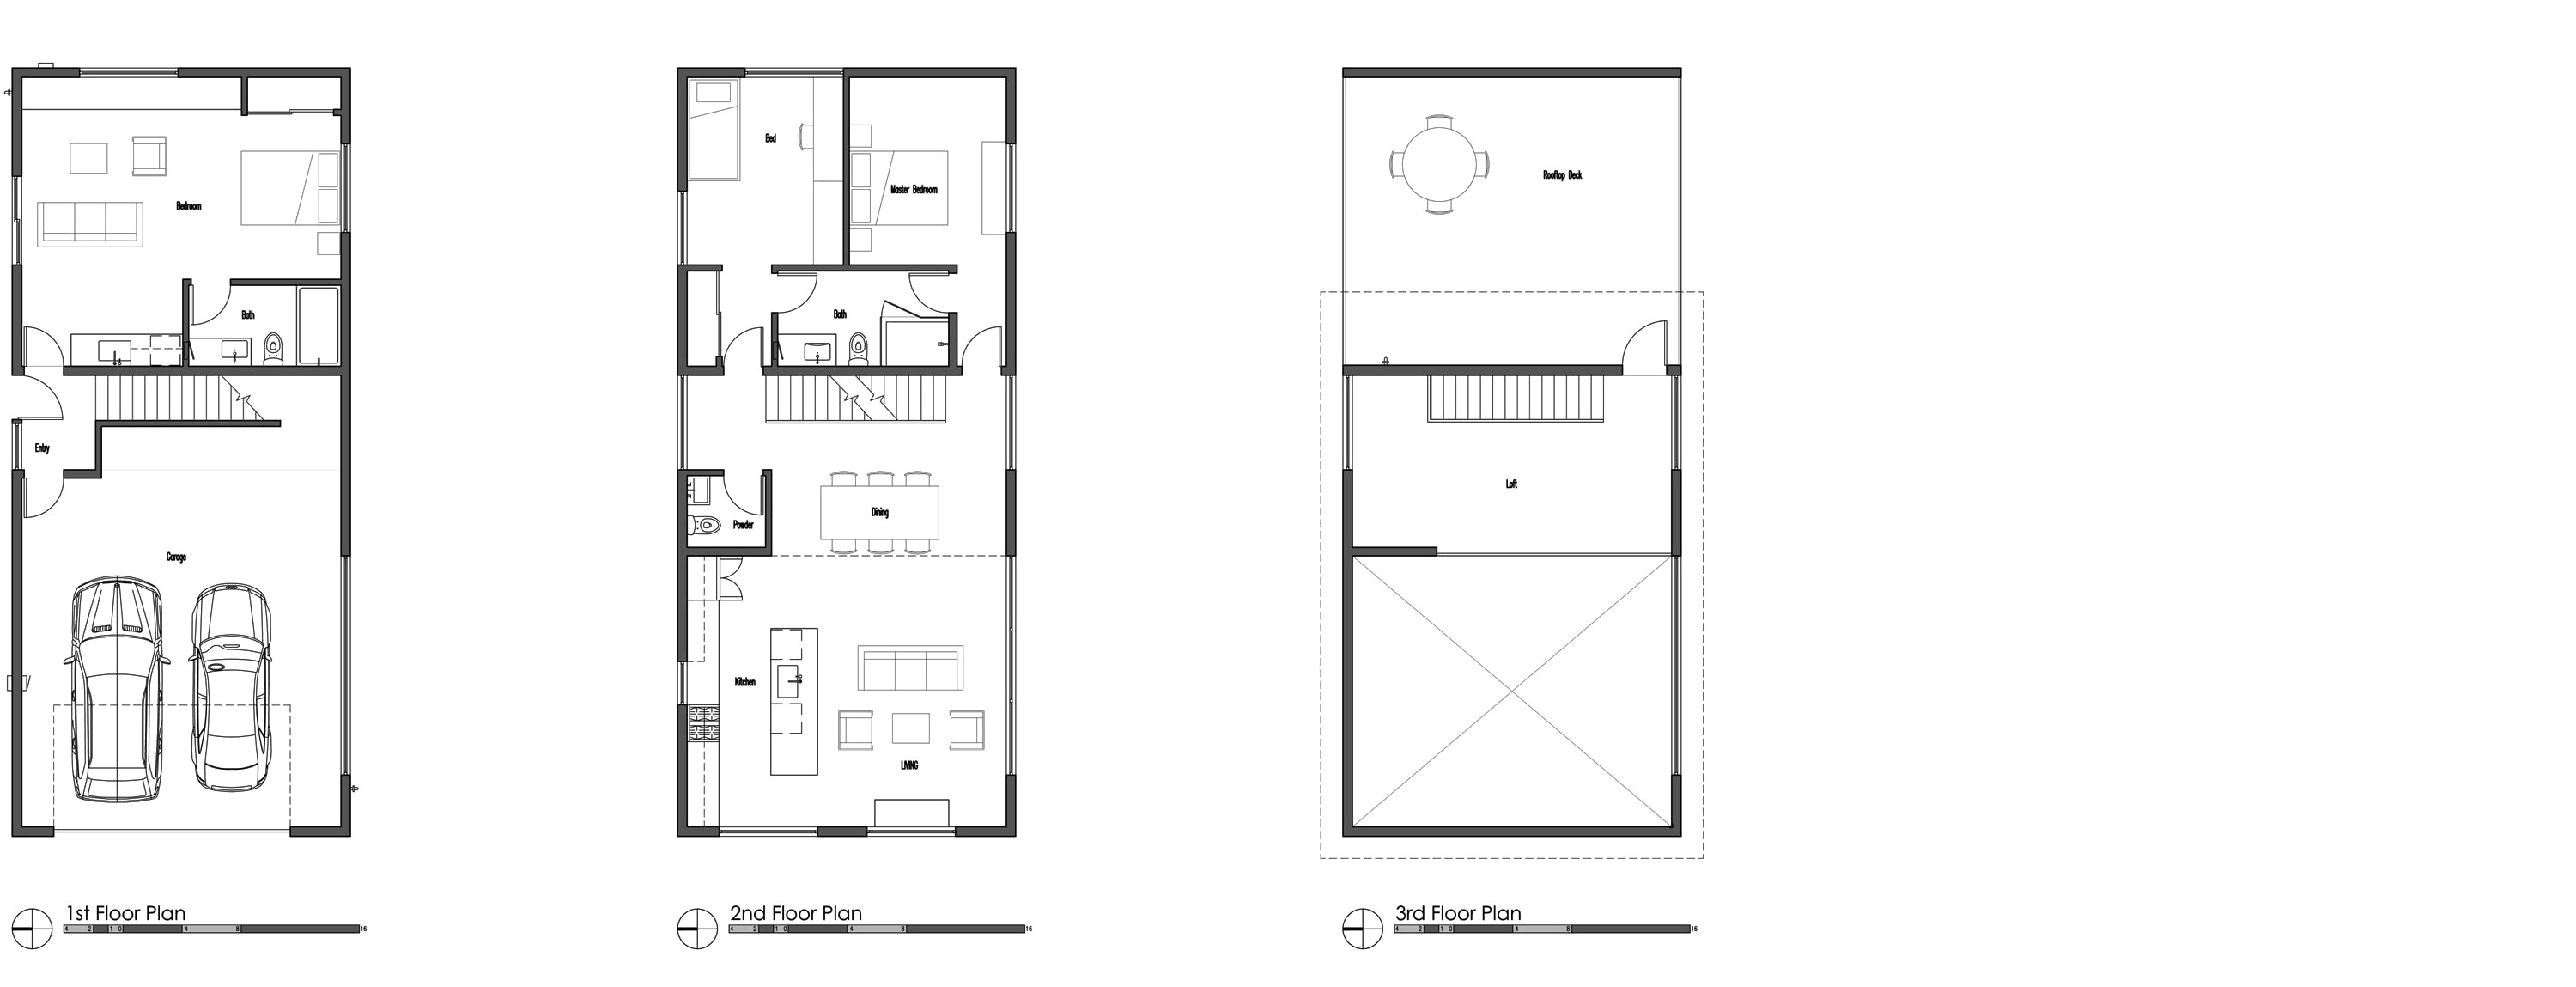 mother in law suite addition house plans floor plans small house plans inlaw suite house plans inlaw suite